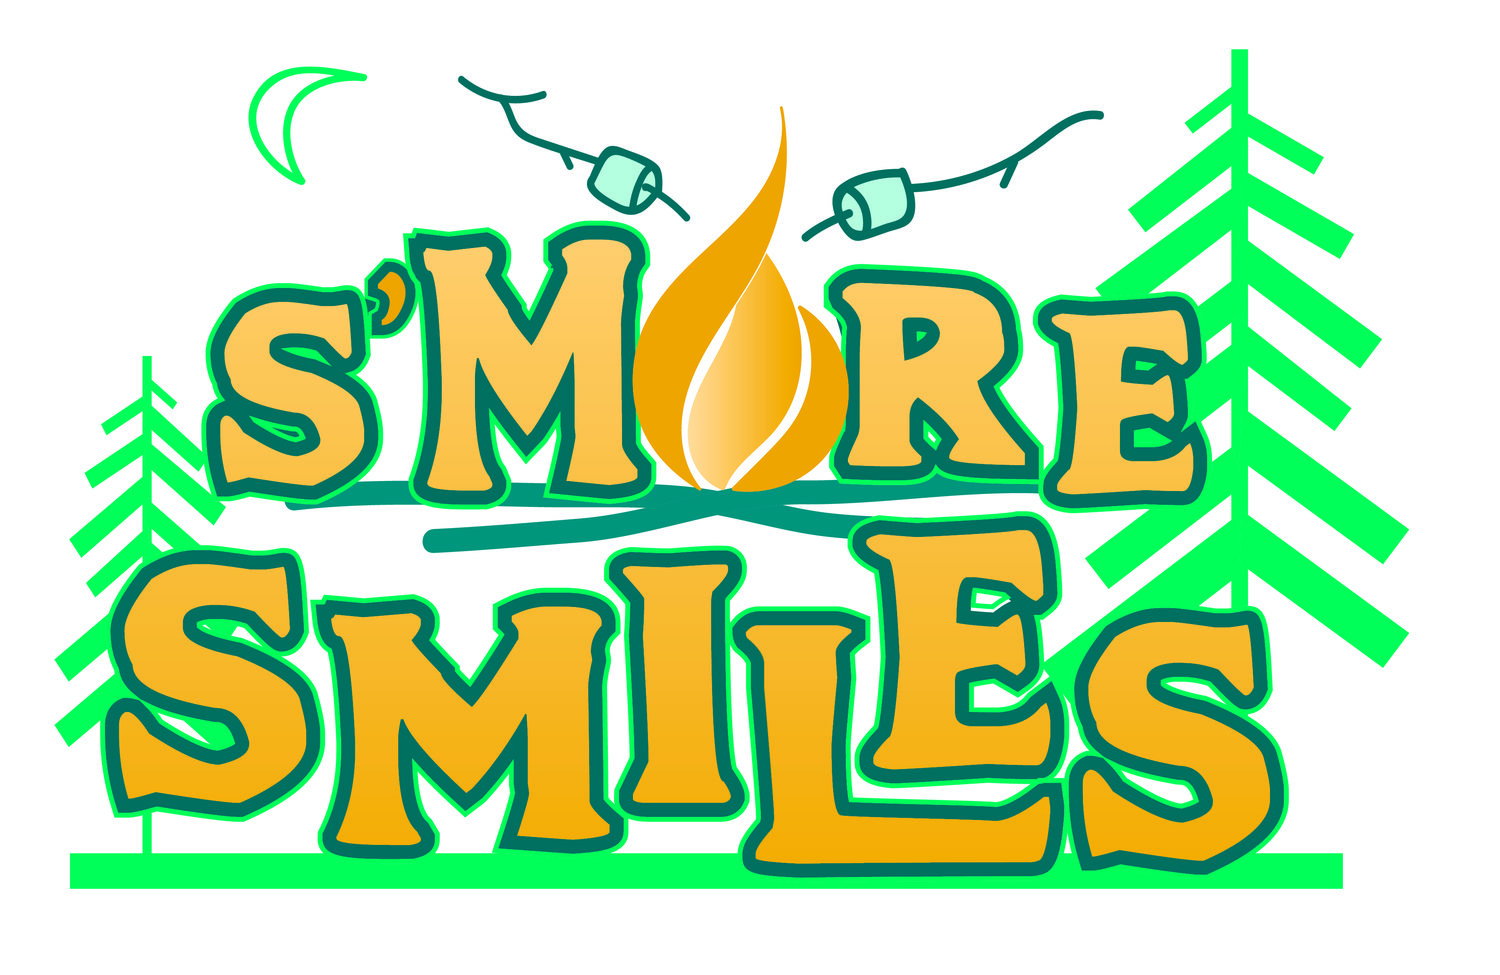 Welcome to S'more Smiles